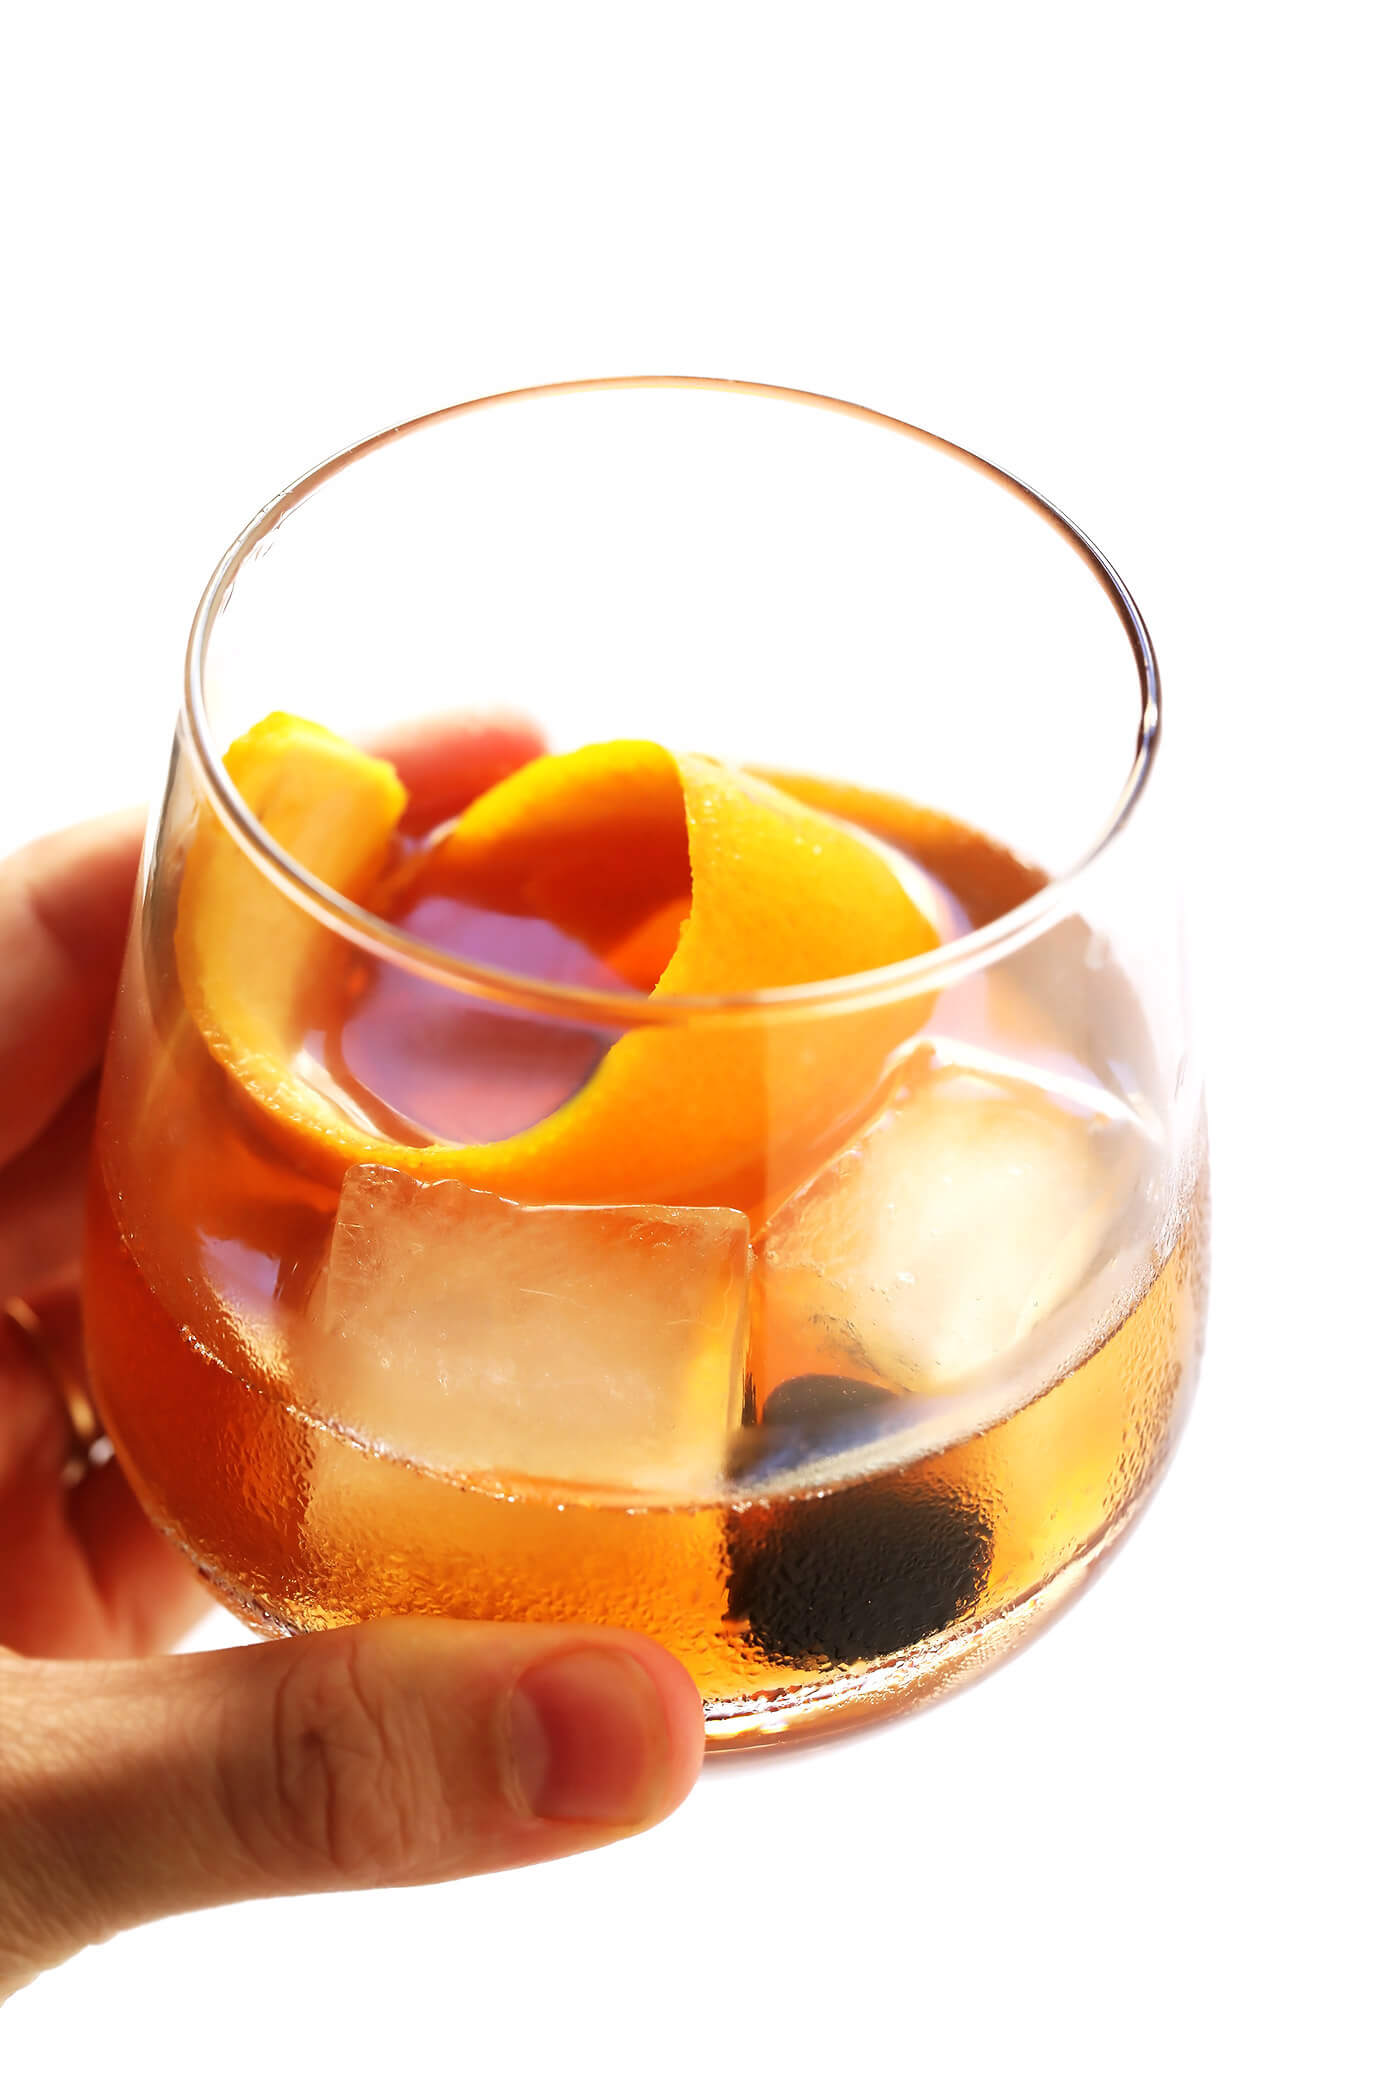 Maple Old Fashioned Cocktail Drink Recipe